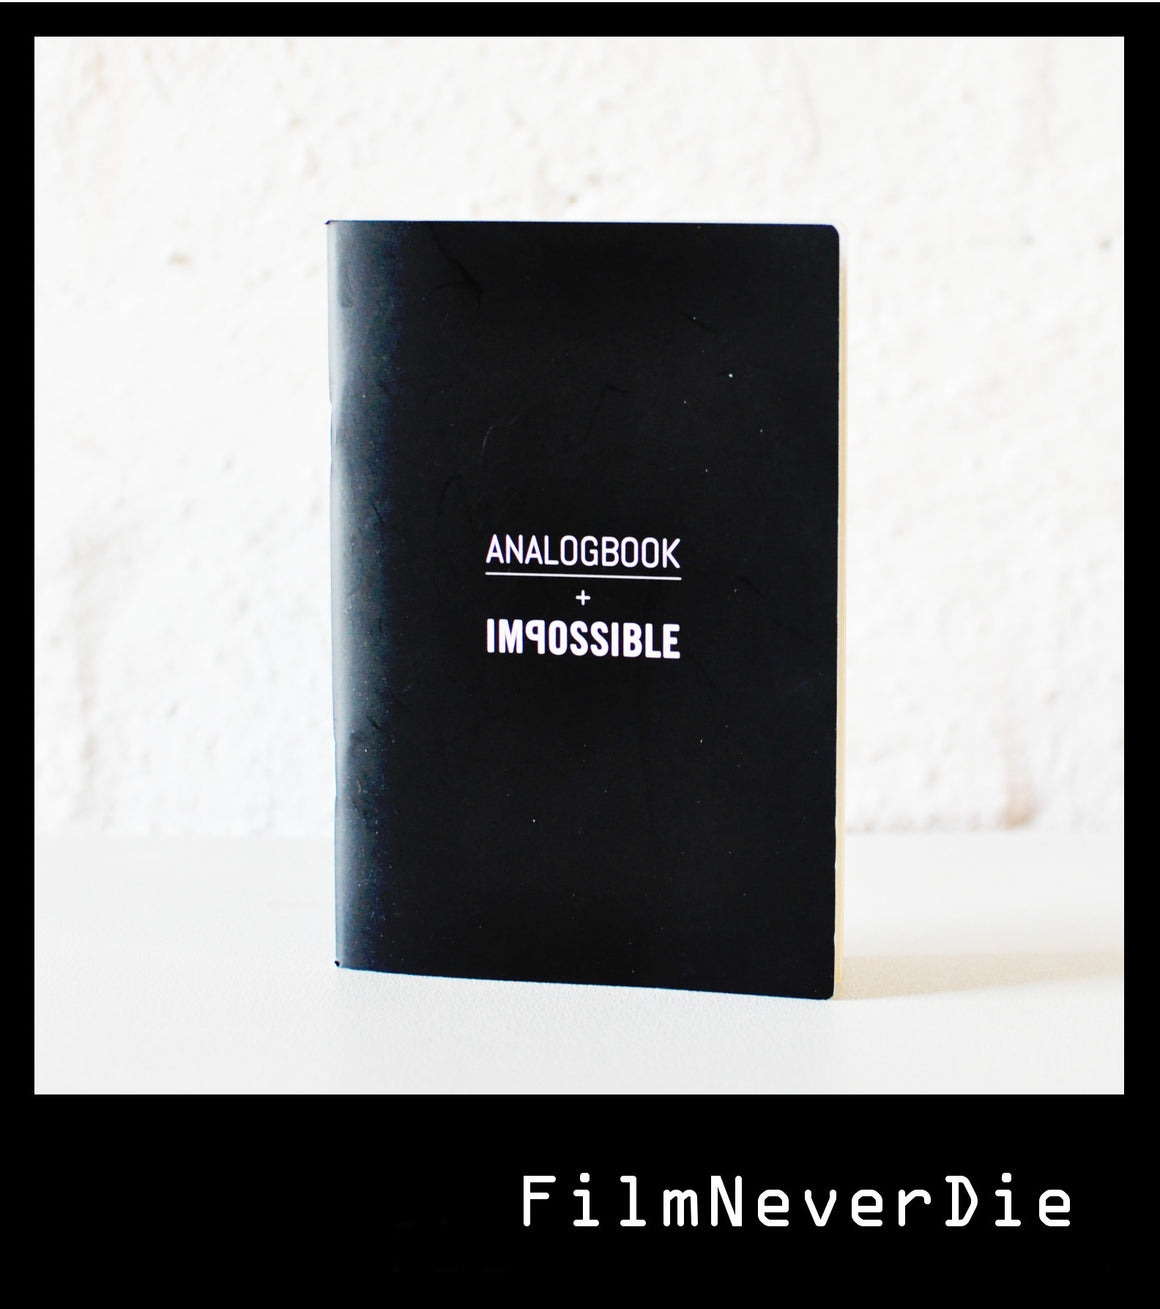 Impossible analog book